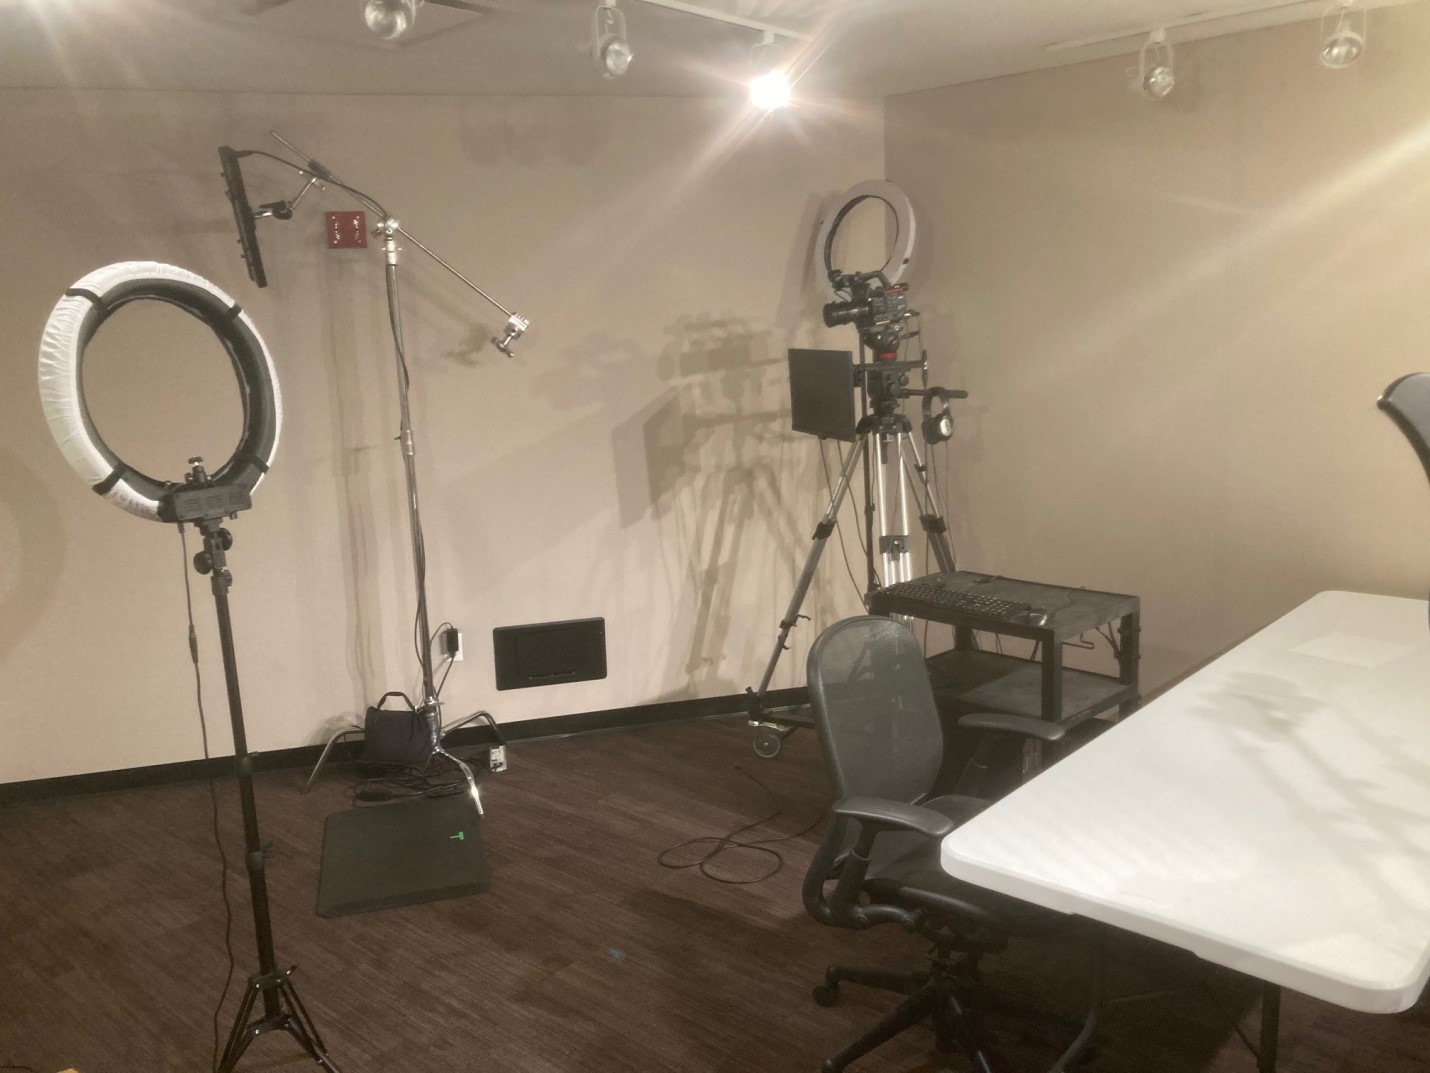 An image of the audio studio podcasting set-up